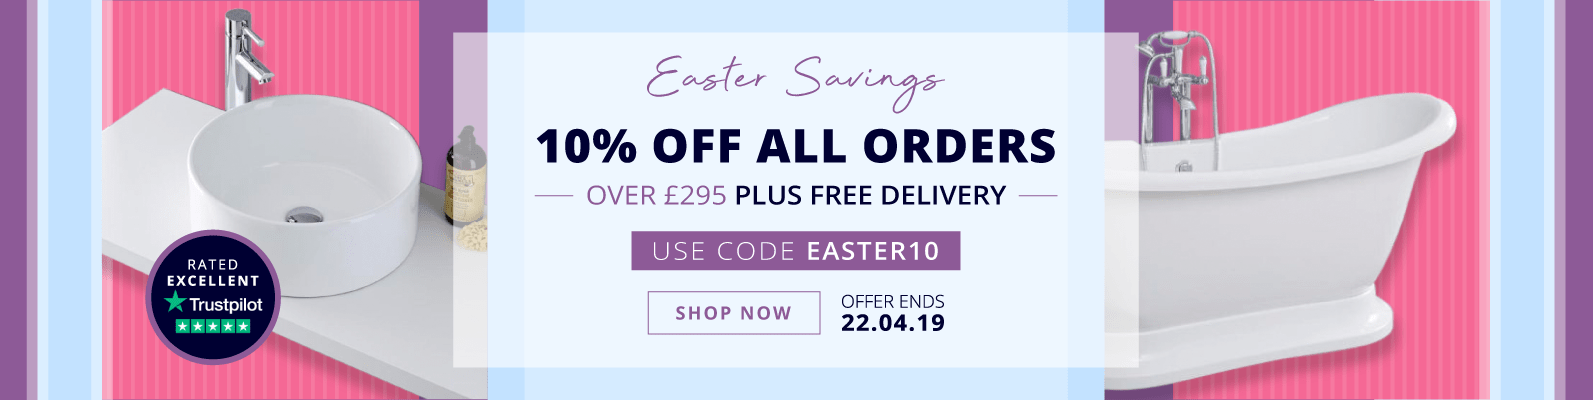 10% Off All Orders Over £295 Plus Free Delivery  USE CODE: EASTER10